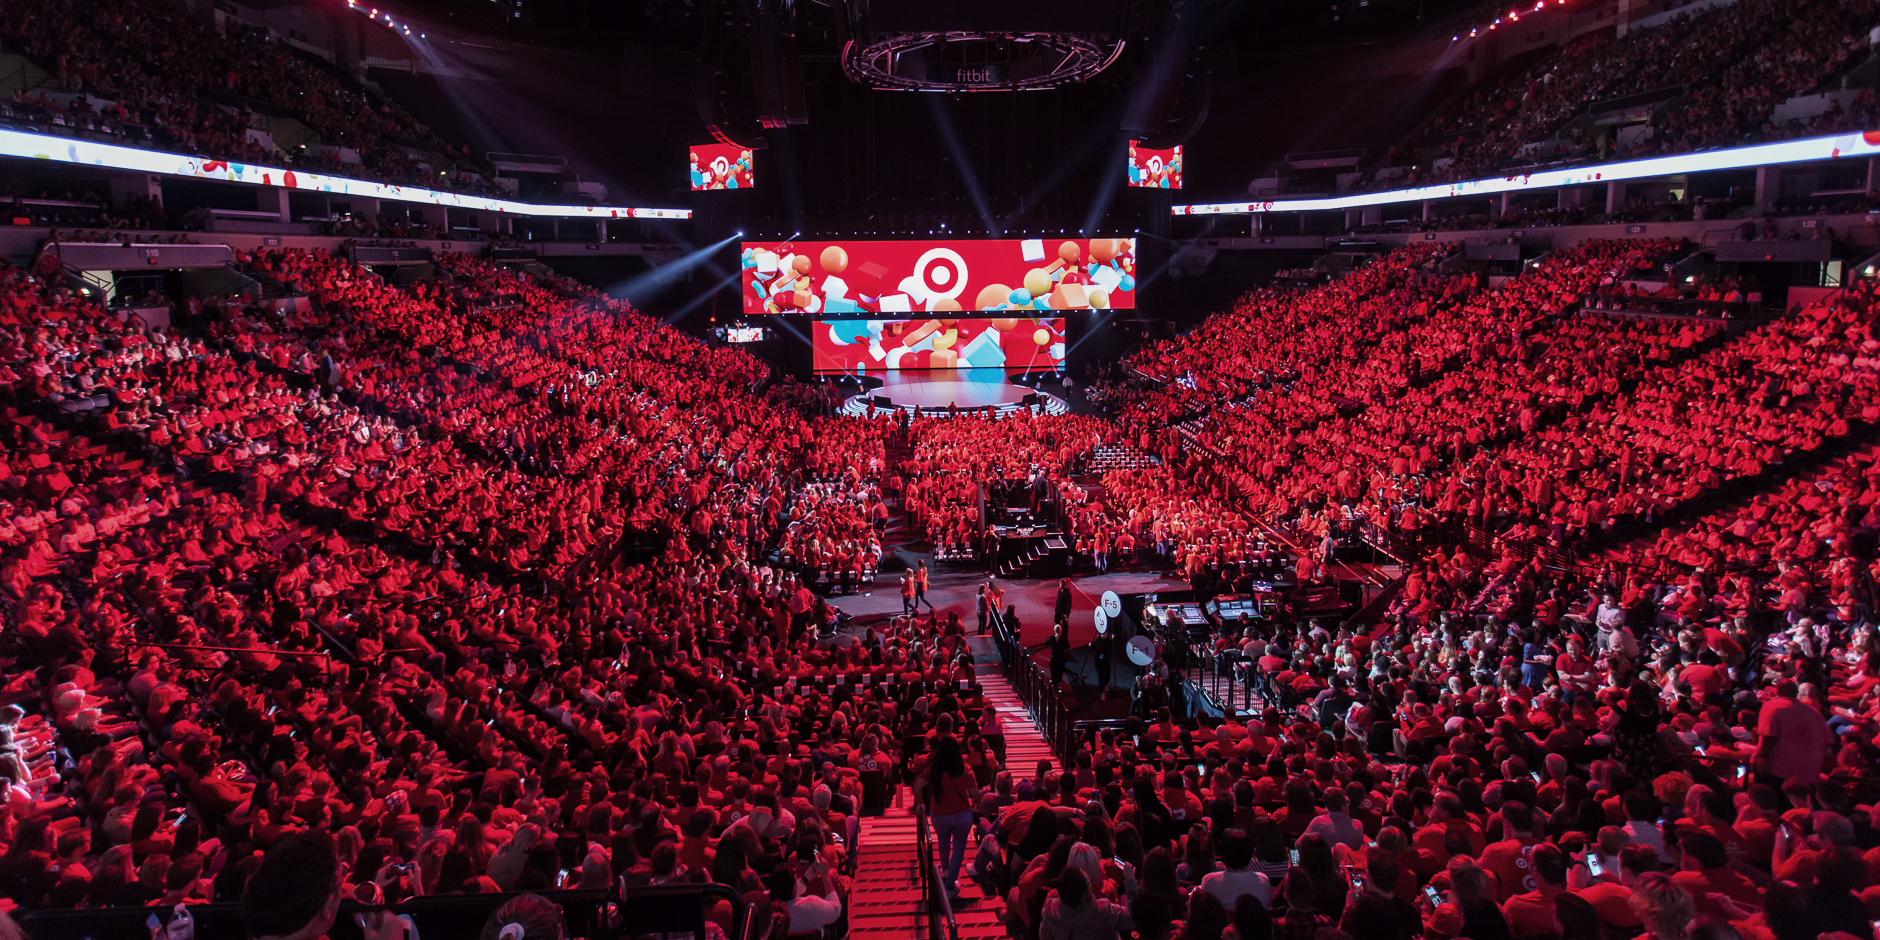 A sea of team members in red and khaki fill the seats at the brightly-lit Target Center